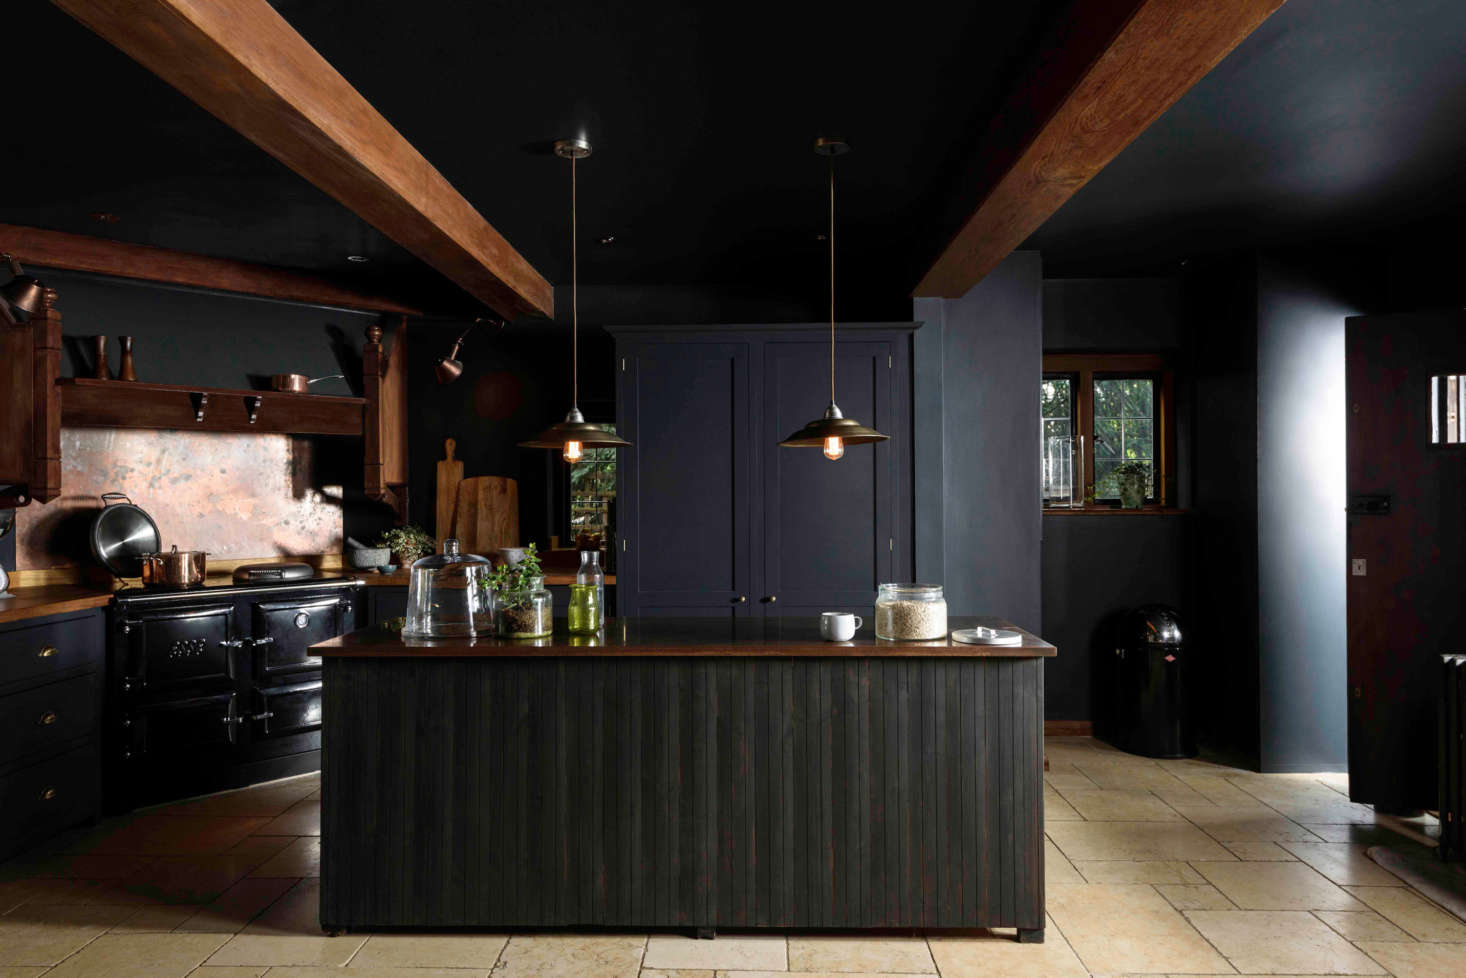 Kitchen of the Week: An Award-Winning Project with a Heart of Darkness